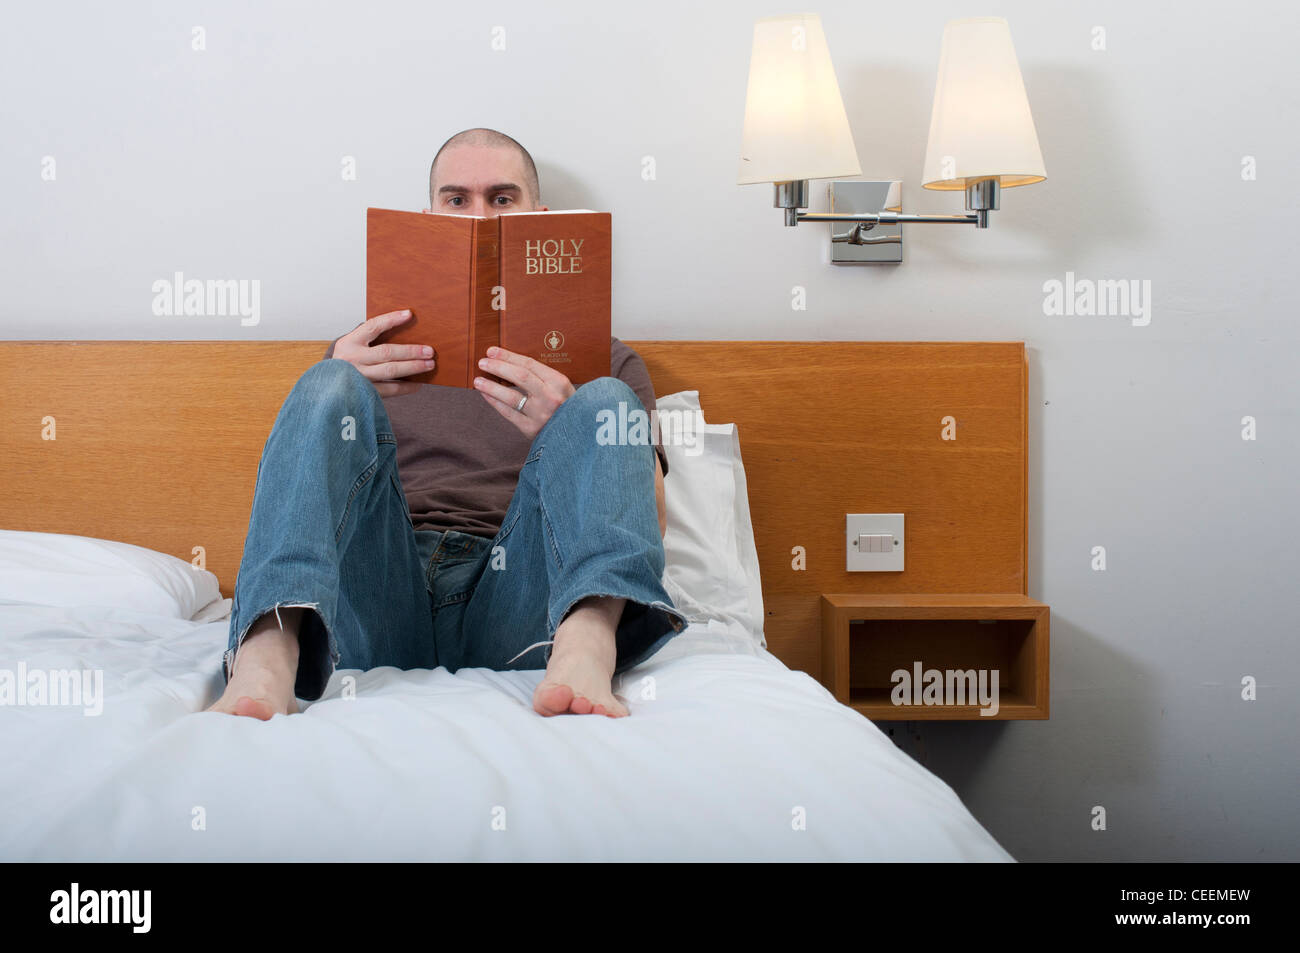 Man, 30-40 years, reading Holy Bible in a hotel room. - Stock Image